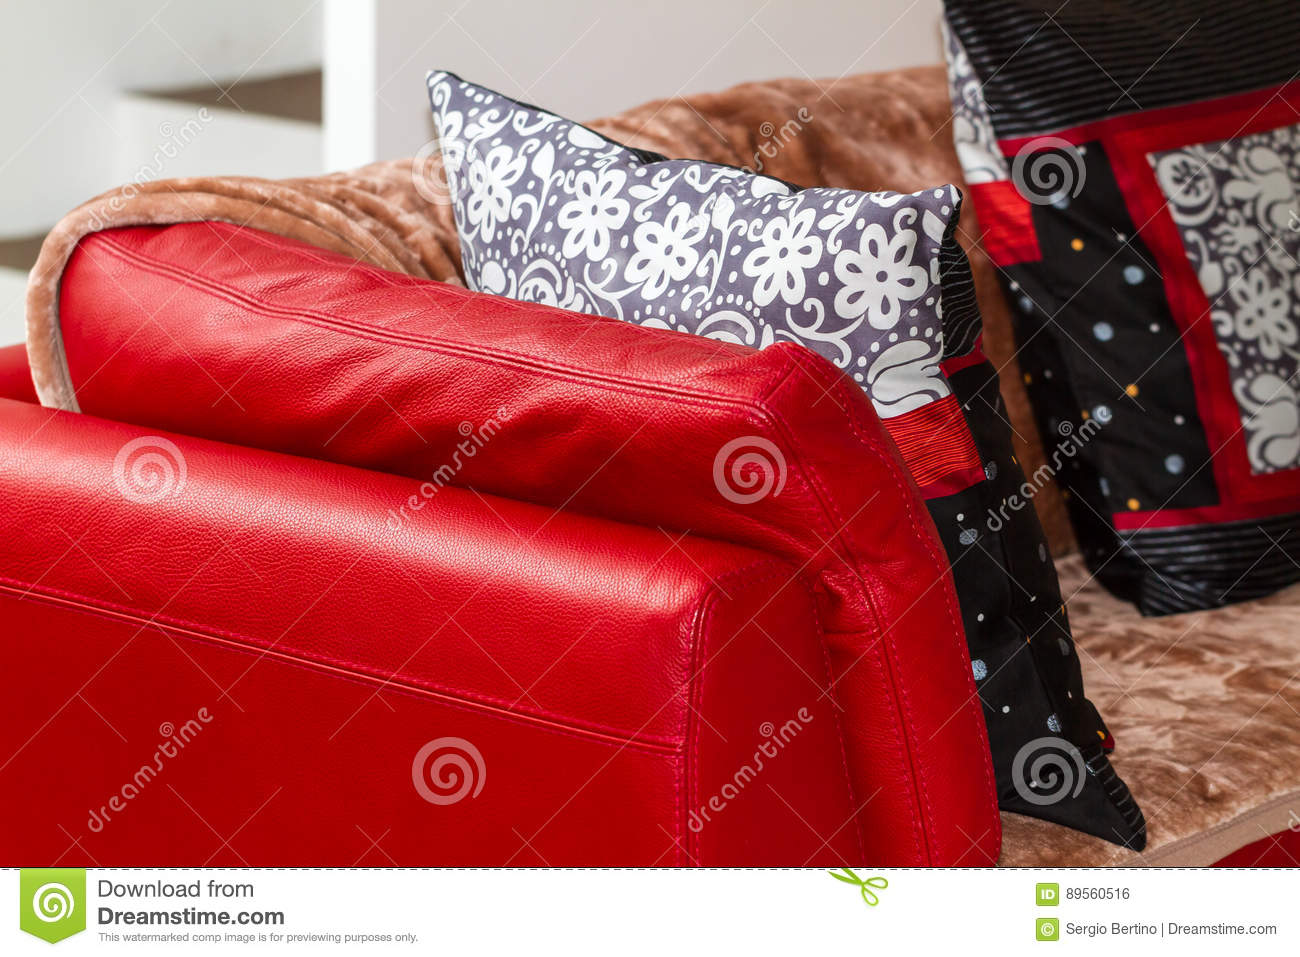 Red Leather Sofa With Throw Blanket And Cushions Stock Photo ...